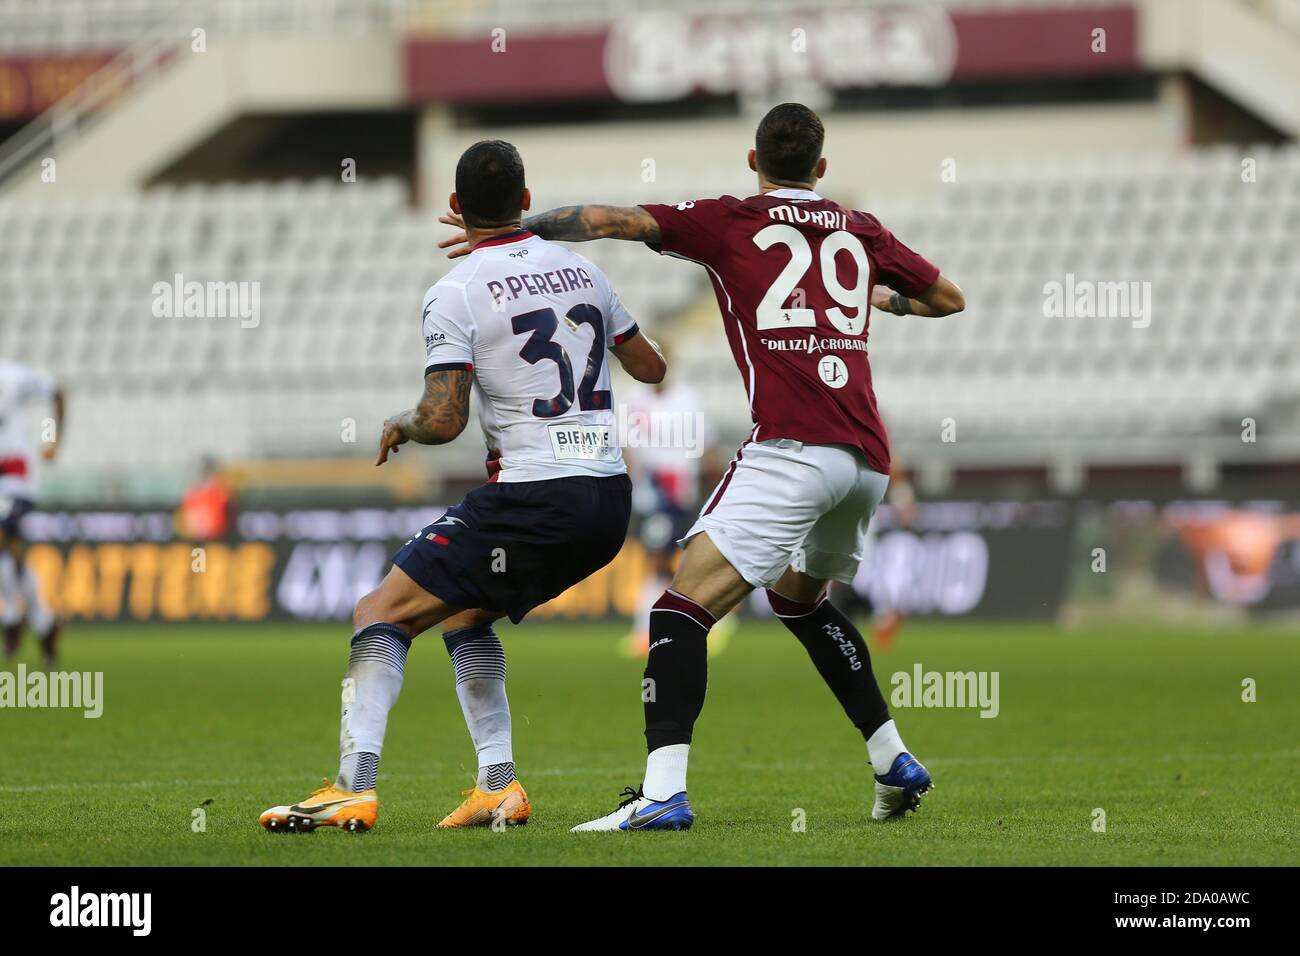 Pedro Pereira of FC Crotone  and Nicola Murru of Torino FC during the Serie A match between Torino FC and Crotone FC at Olympic Grande Torino Stadium Stock Photo